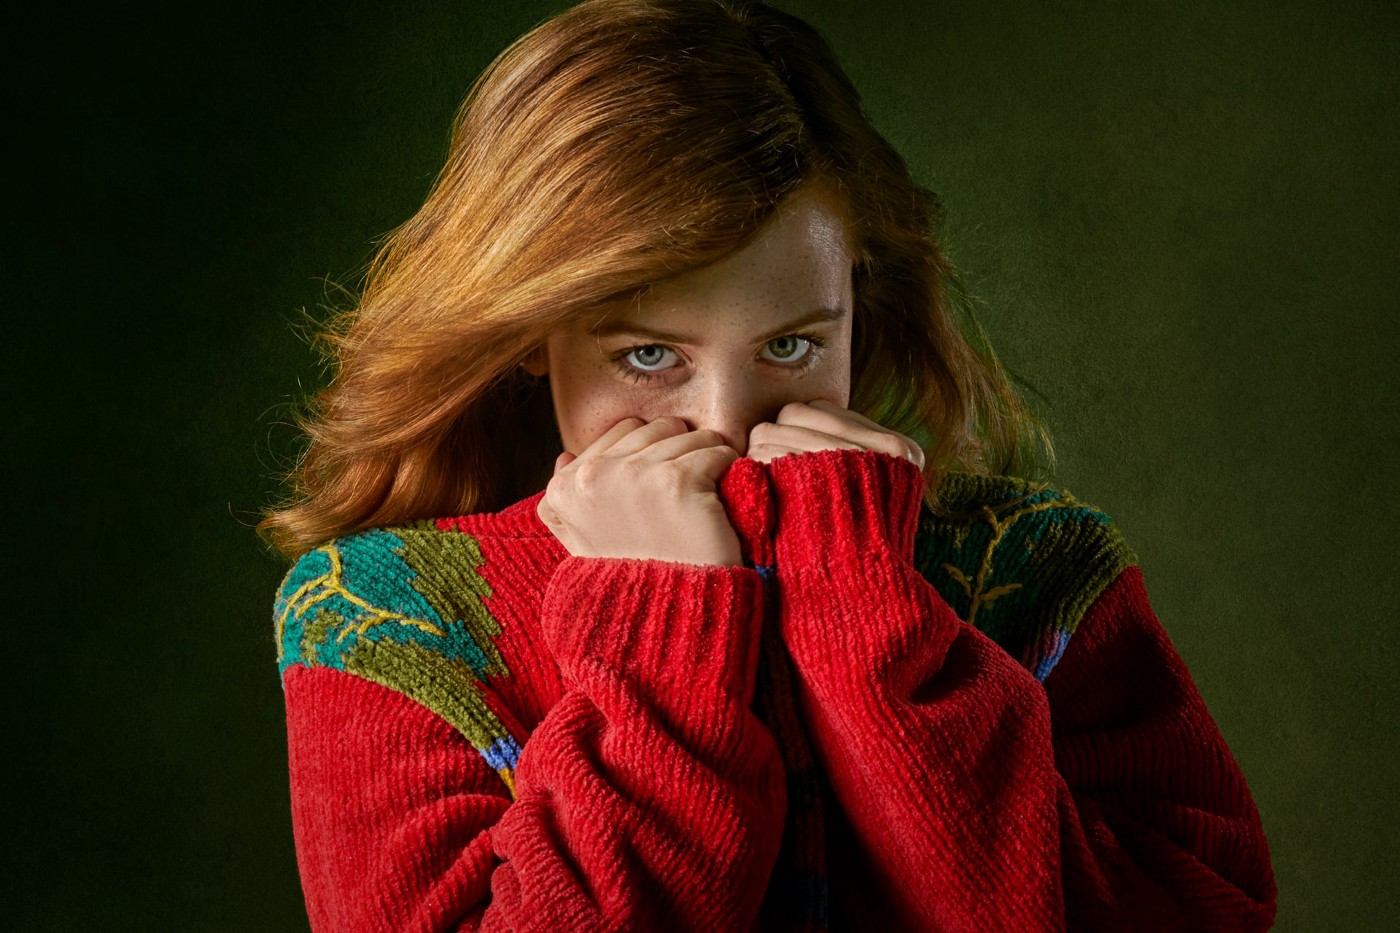 A red haired woman hiding the bottom half of her face with a sweater.